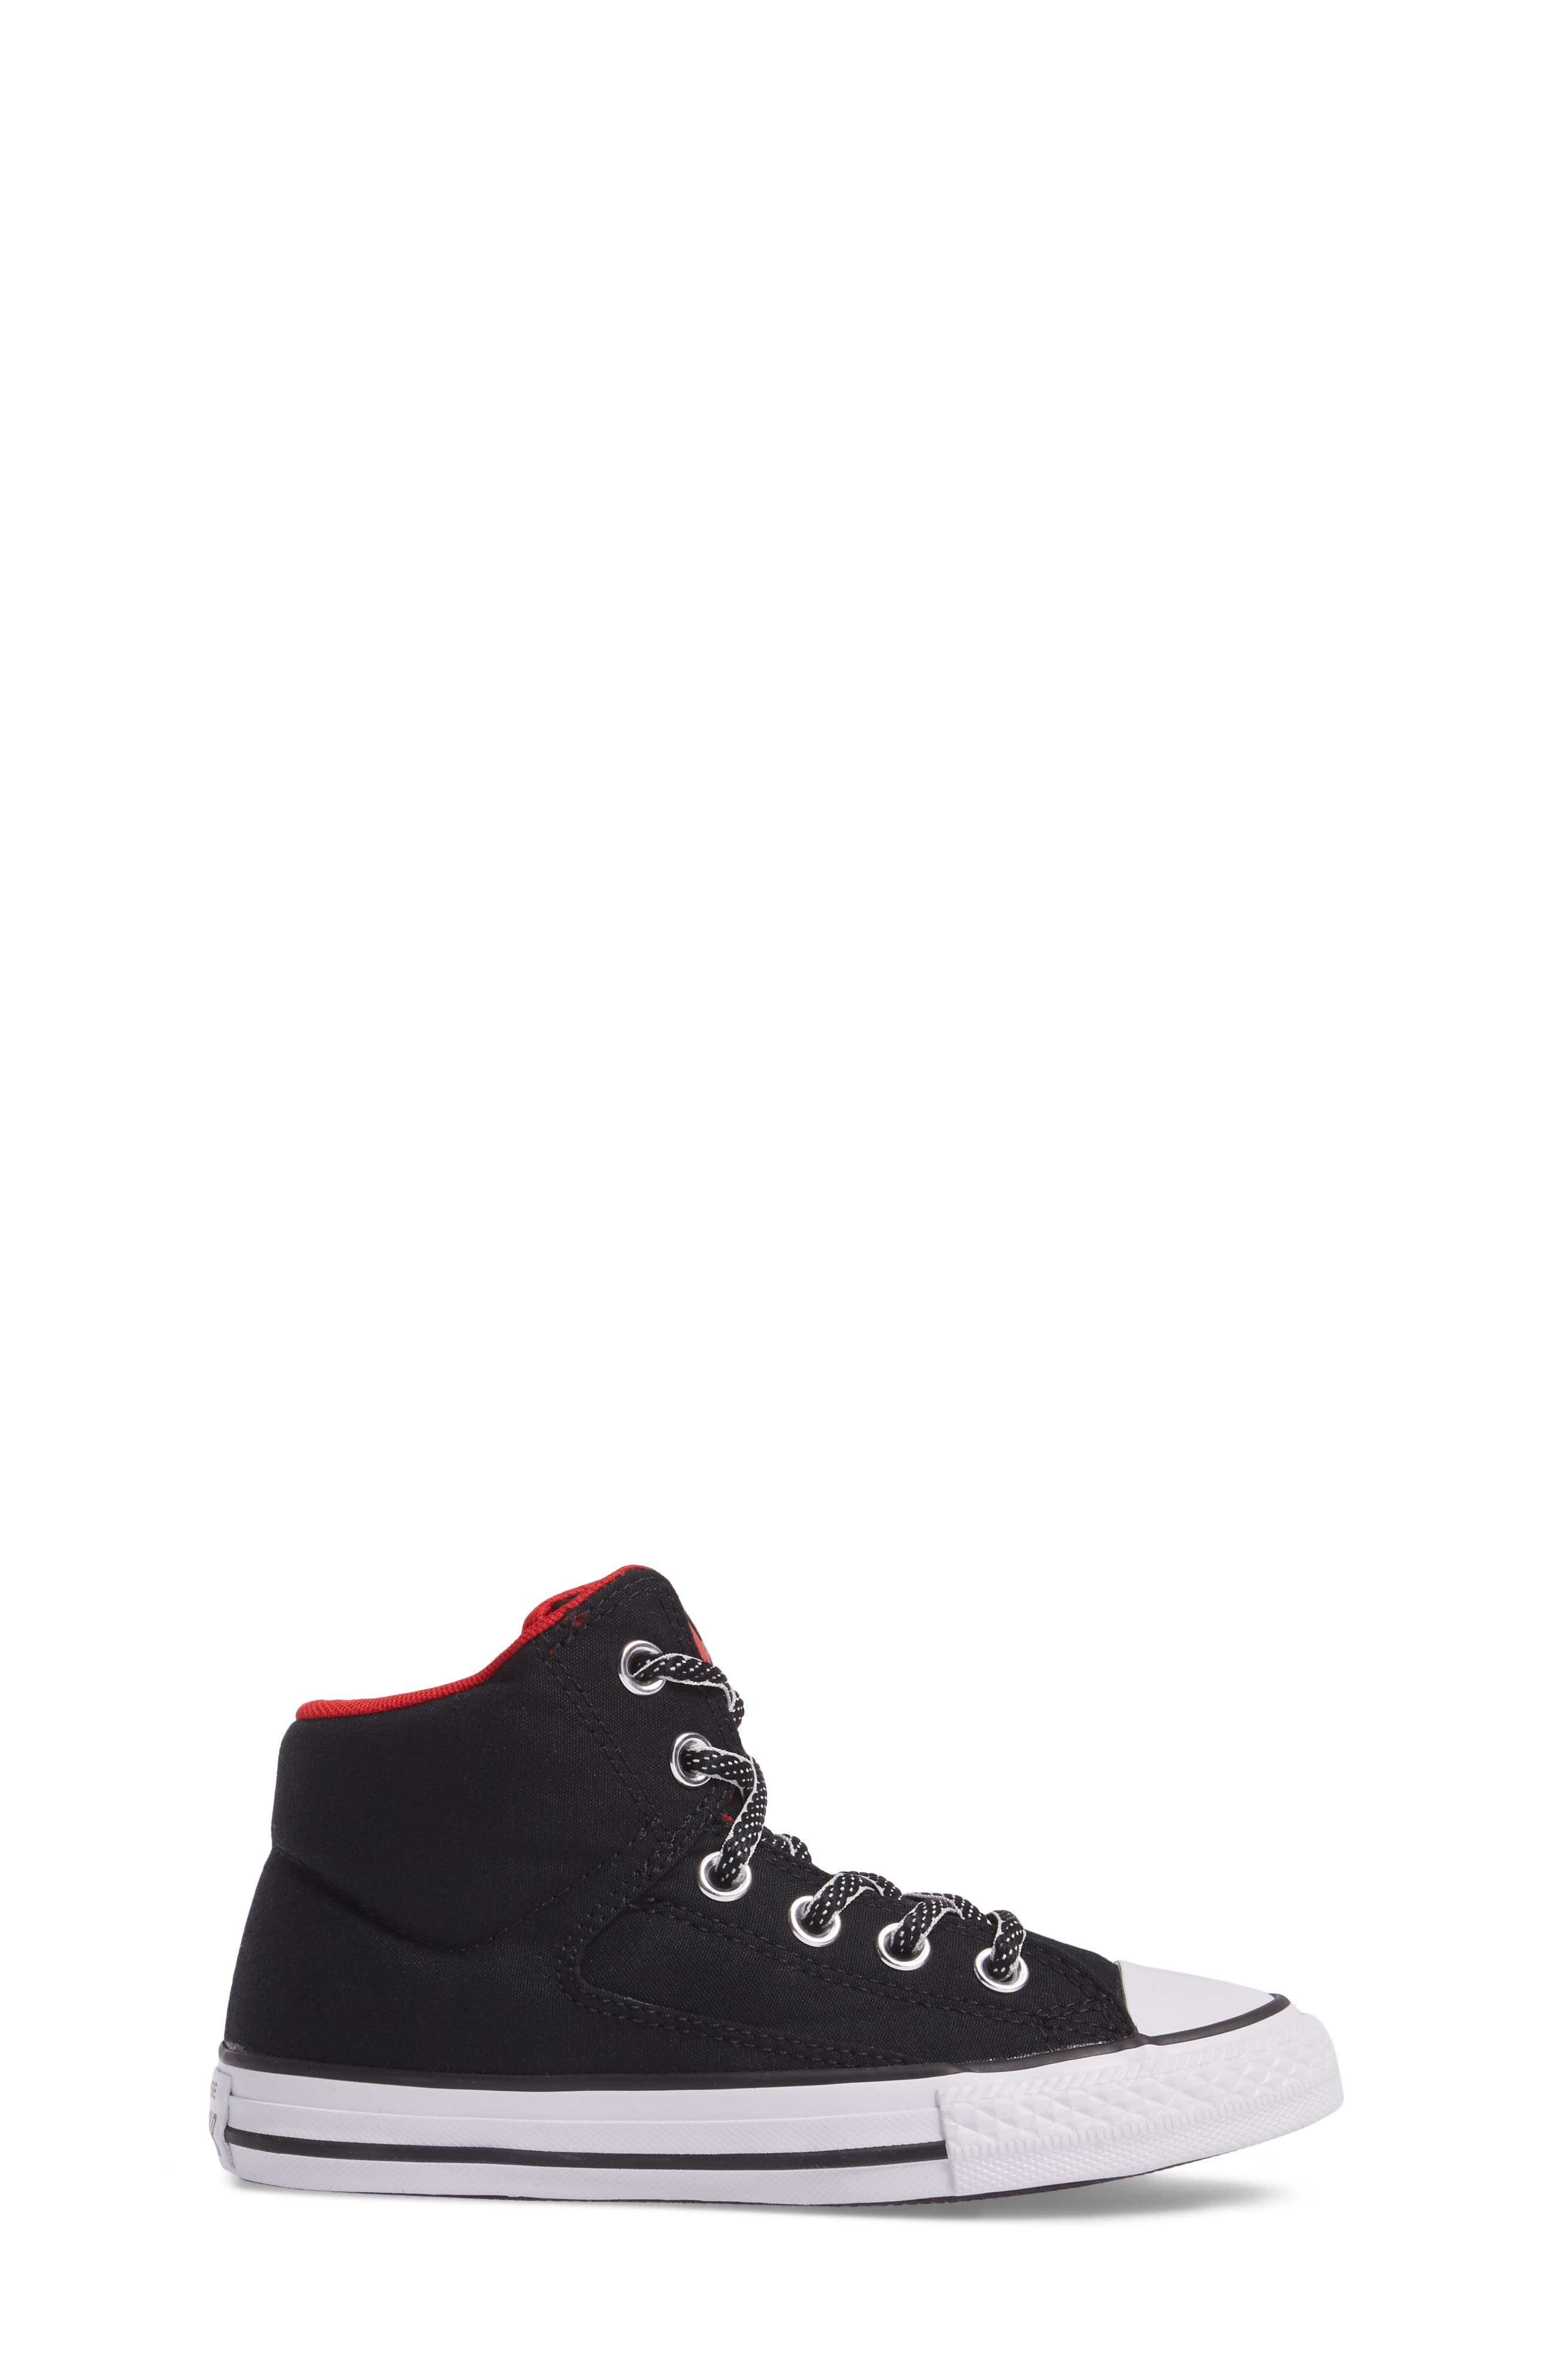 Chuck Taylor<sup>®</sup> All Star<sup>®</sup> High Street High Top Sneaker,                             Alternate thumbnail 3, color,                             Black Canvas